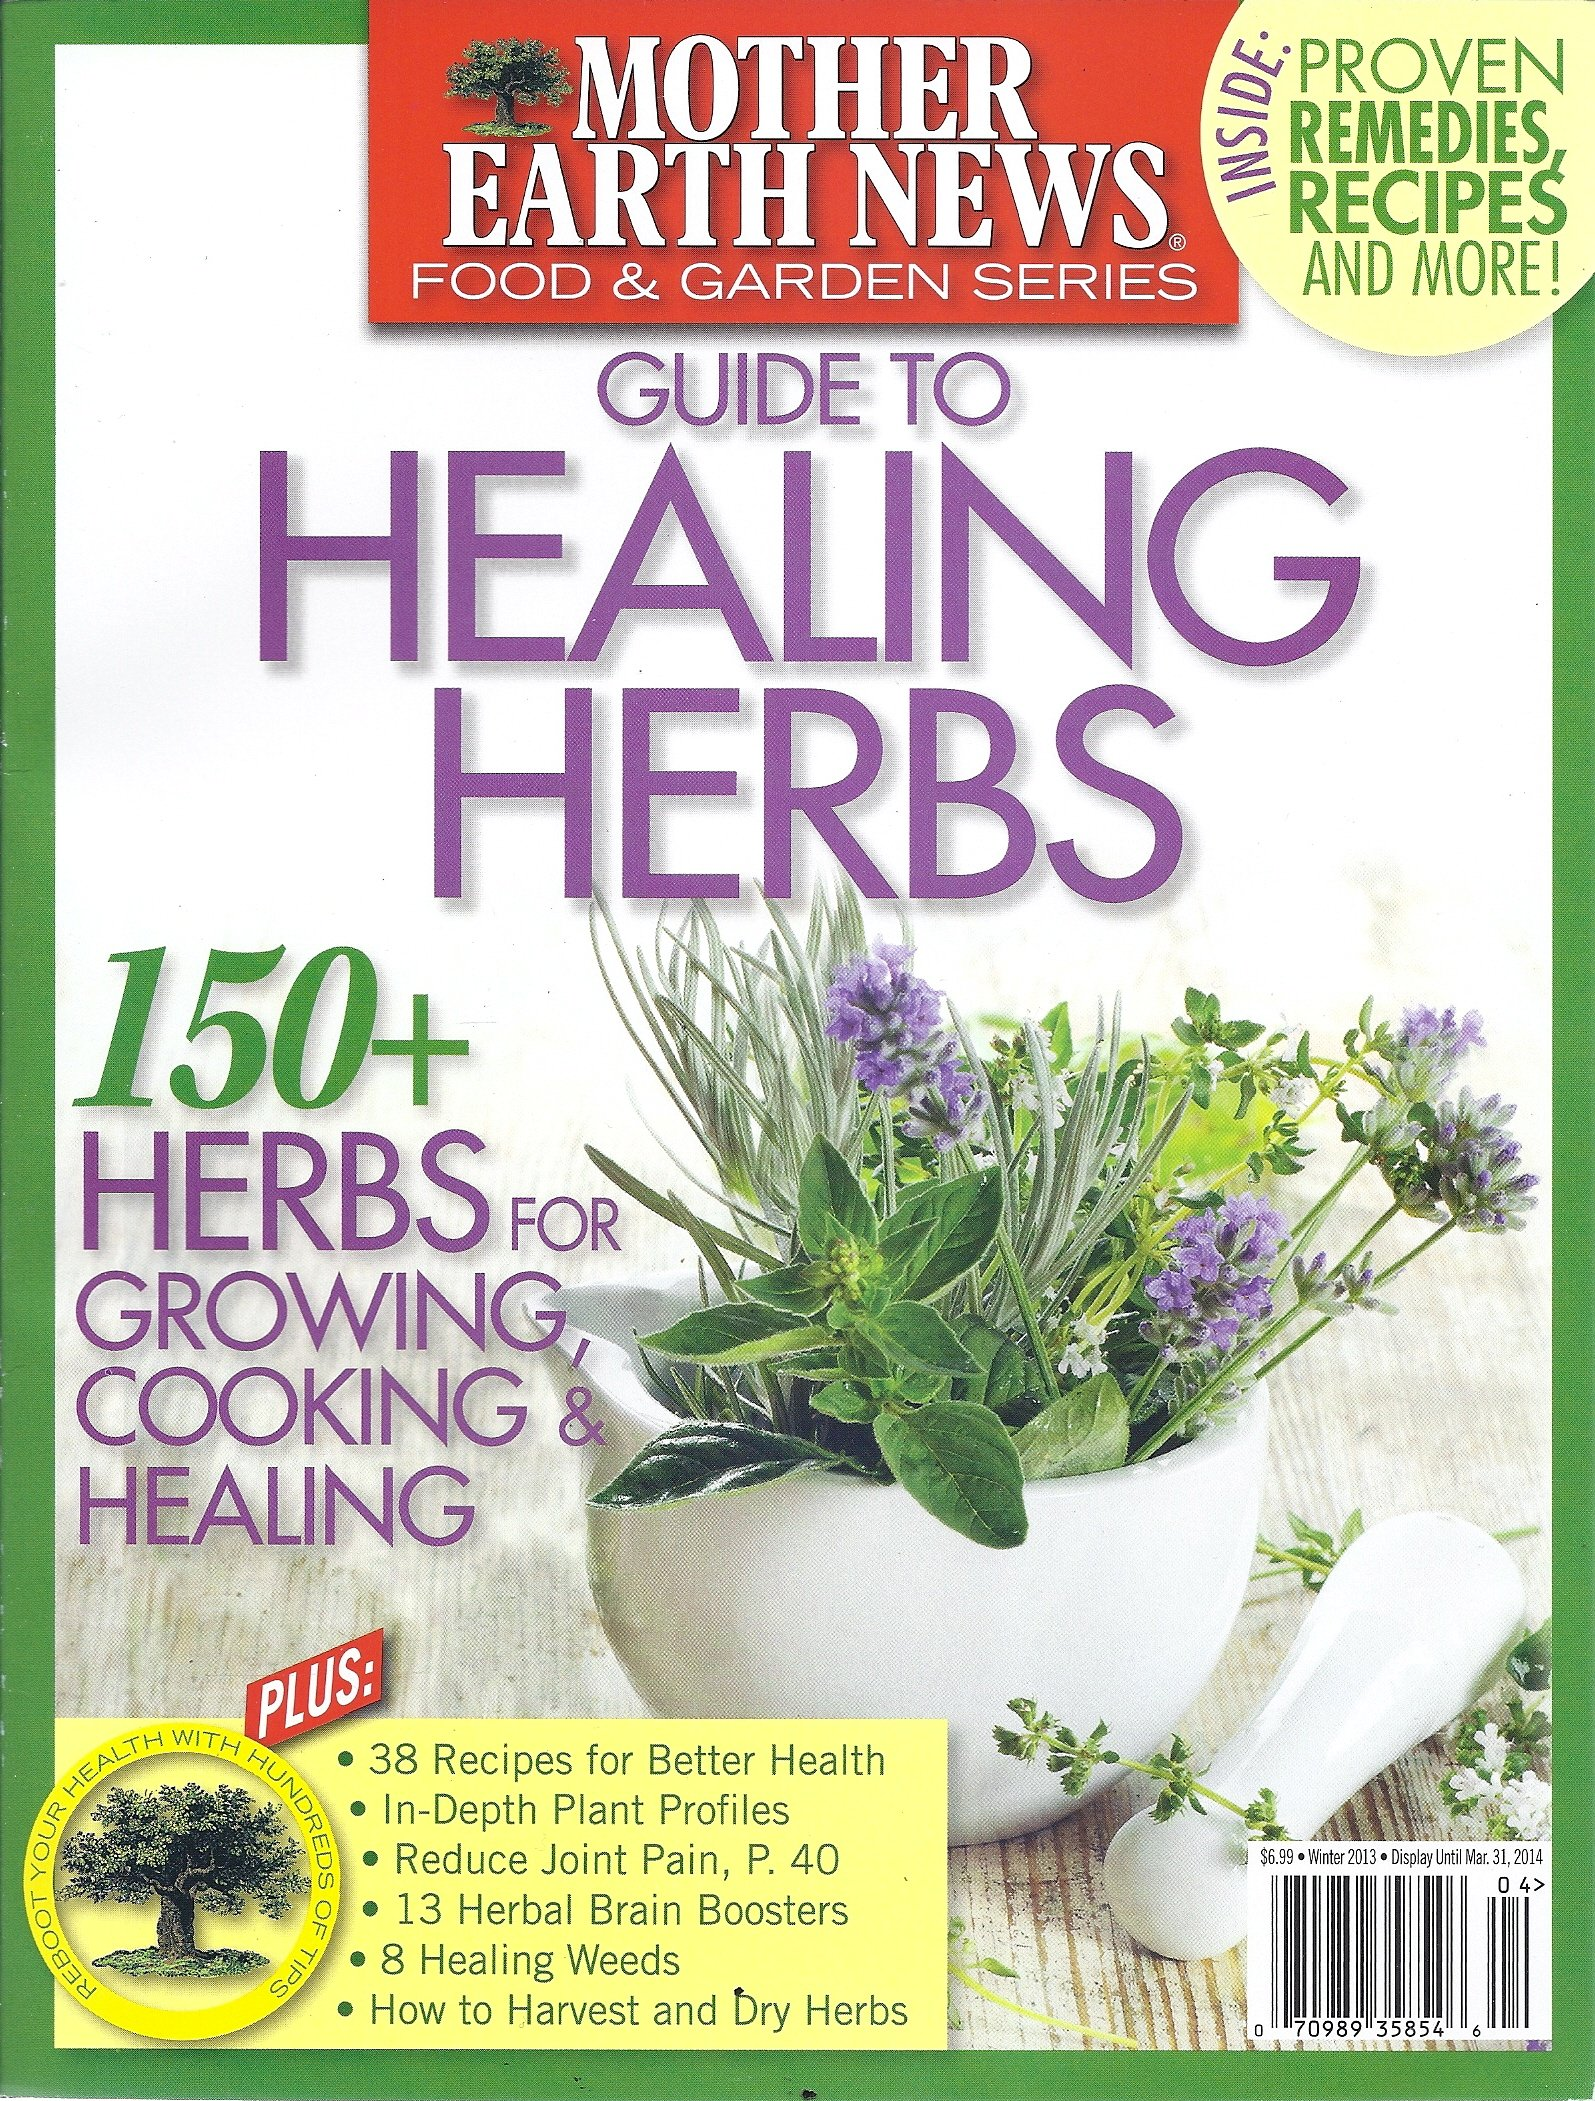 Mother Earth News Guide To Healing Herbs Winter 2013 Jessica Kellner Amazon Books